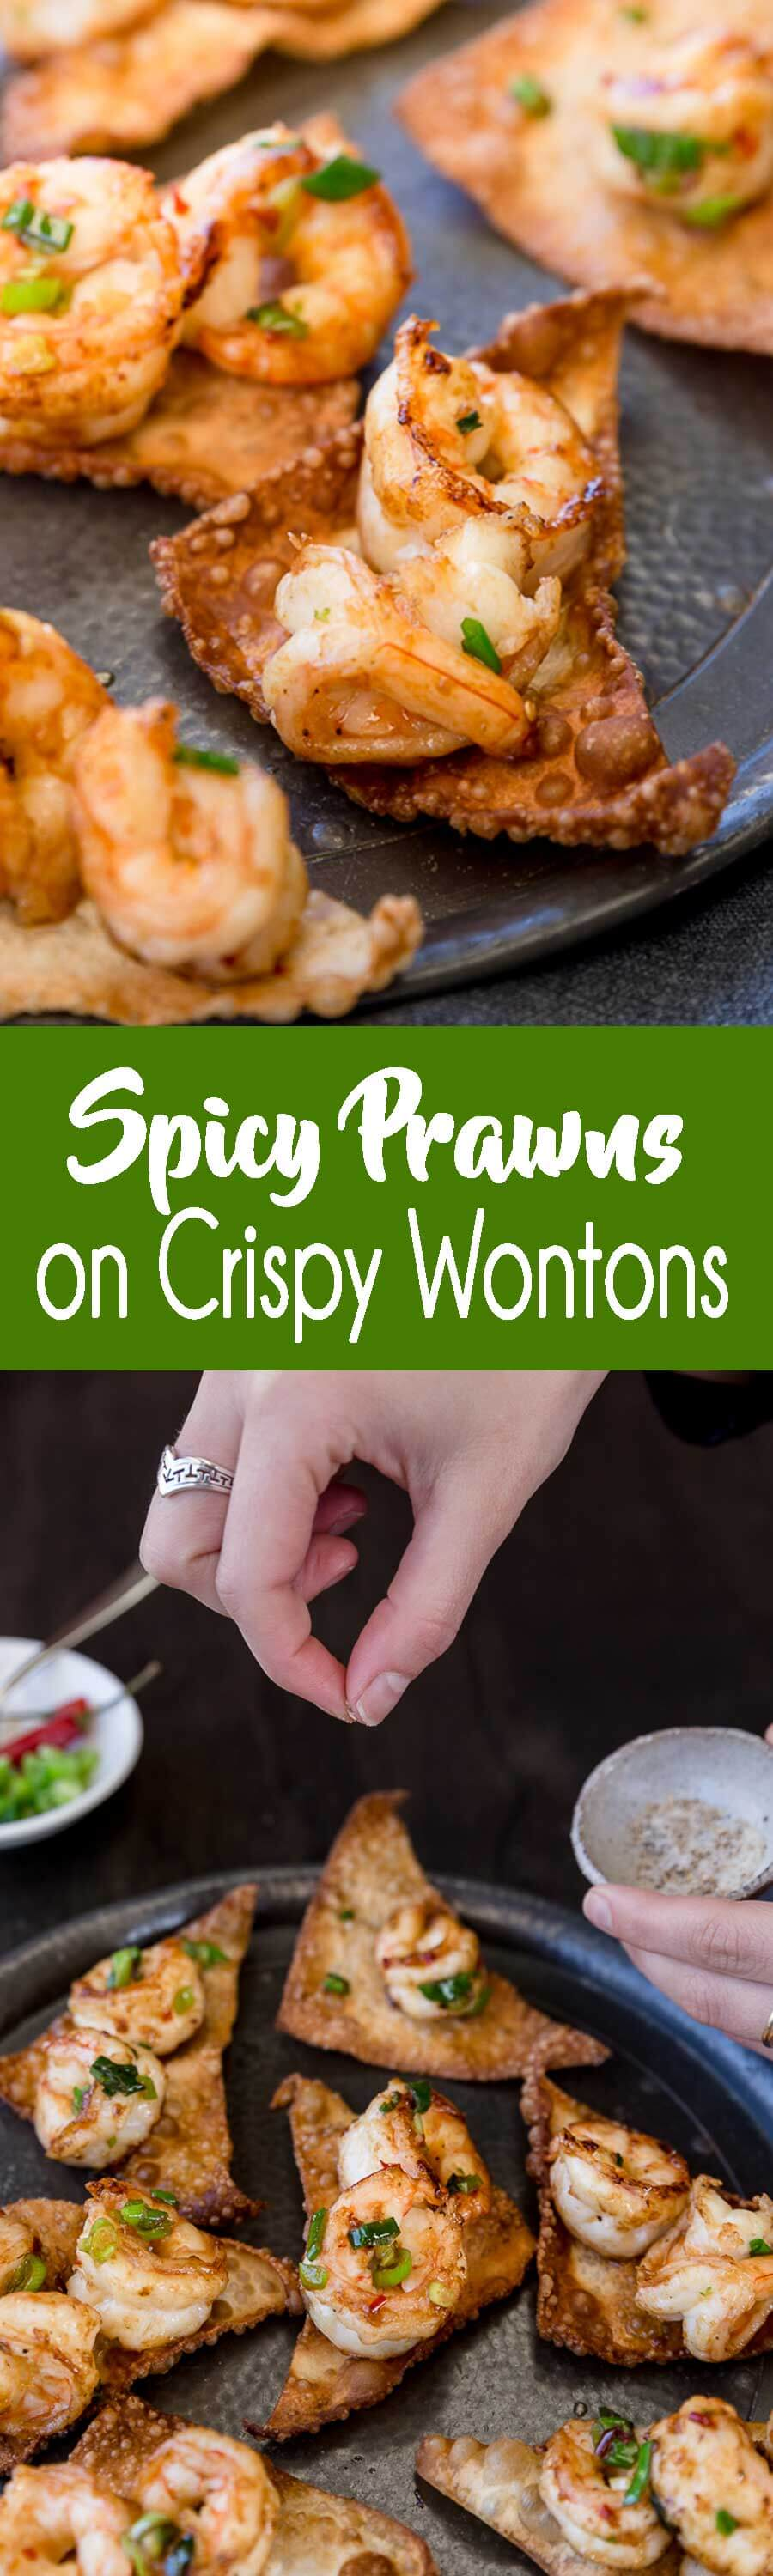 This appetizer always disappears first at parties and football games, spicy prawns on crispy wontons! Our favorite!